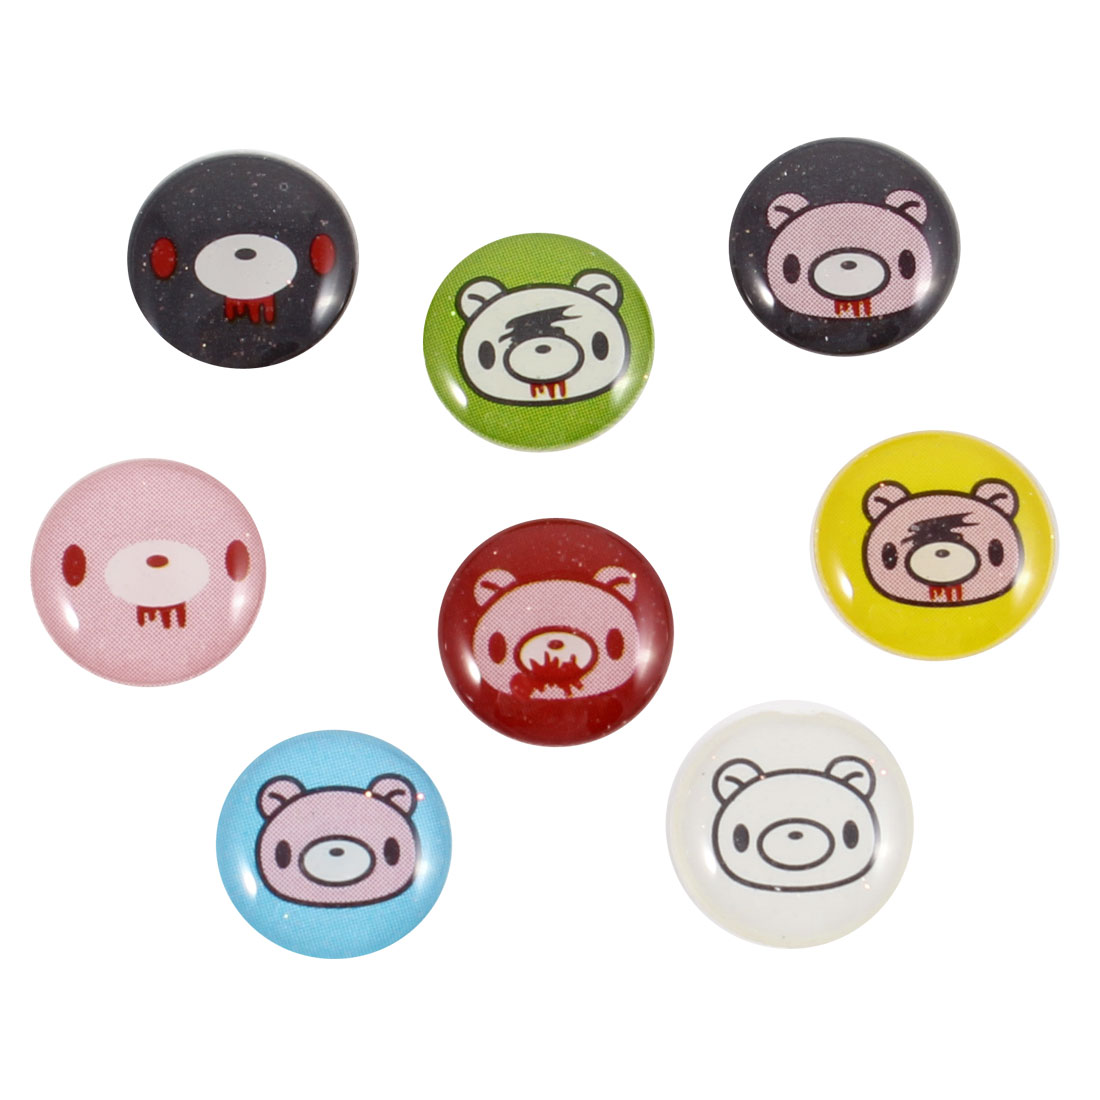 8 in 1 Multicolor Cartoon Bear Home Button Sticker for Apple iPhone 3 3GS 4 4G 4S